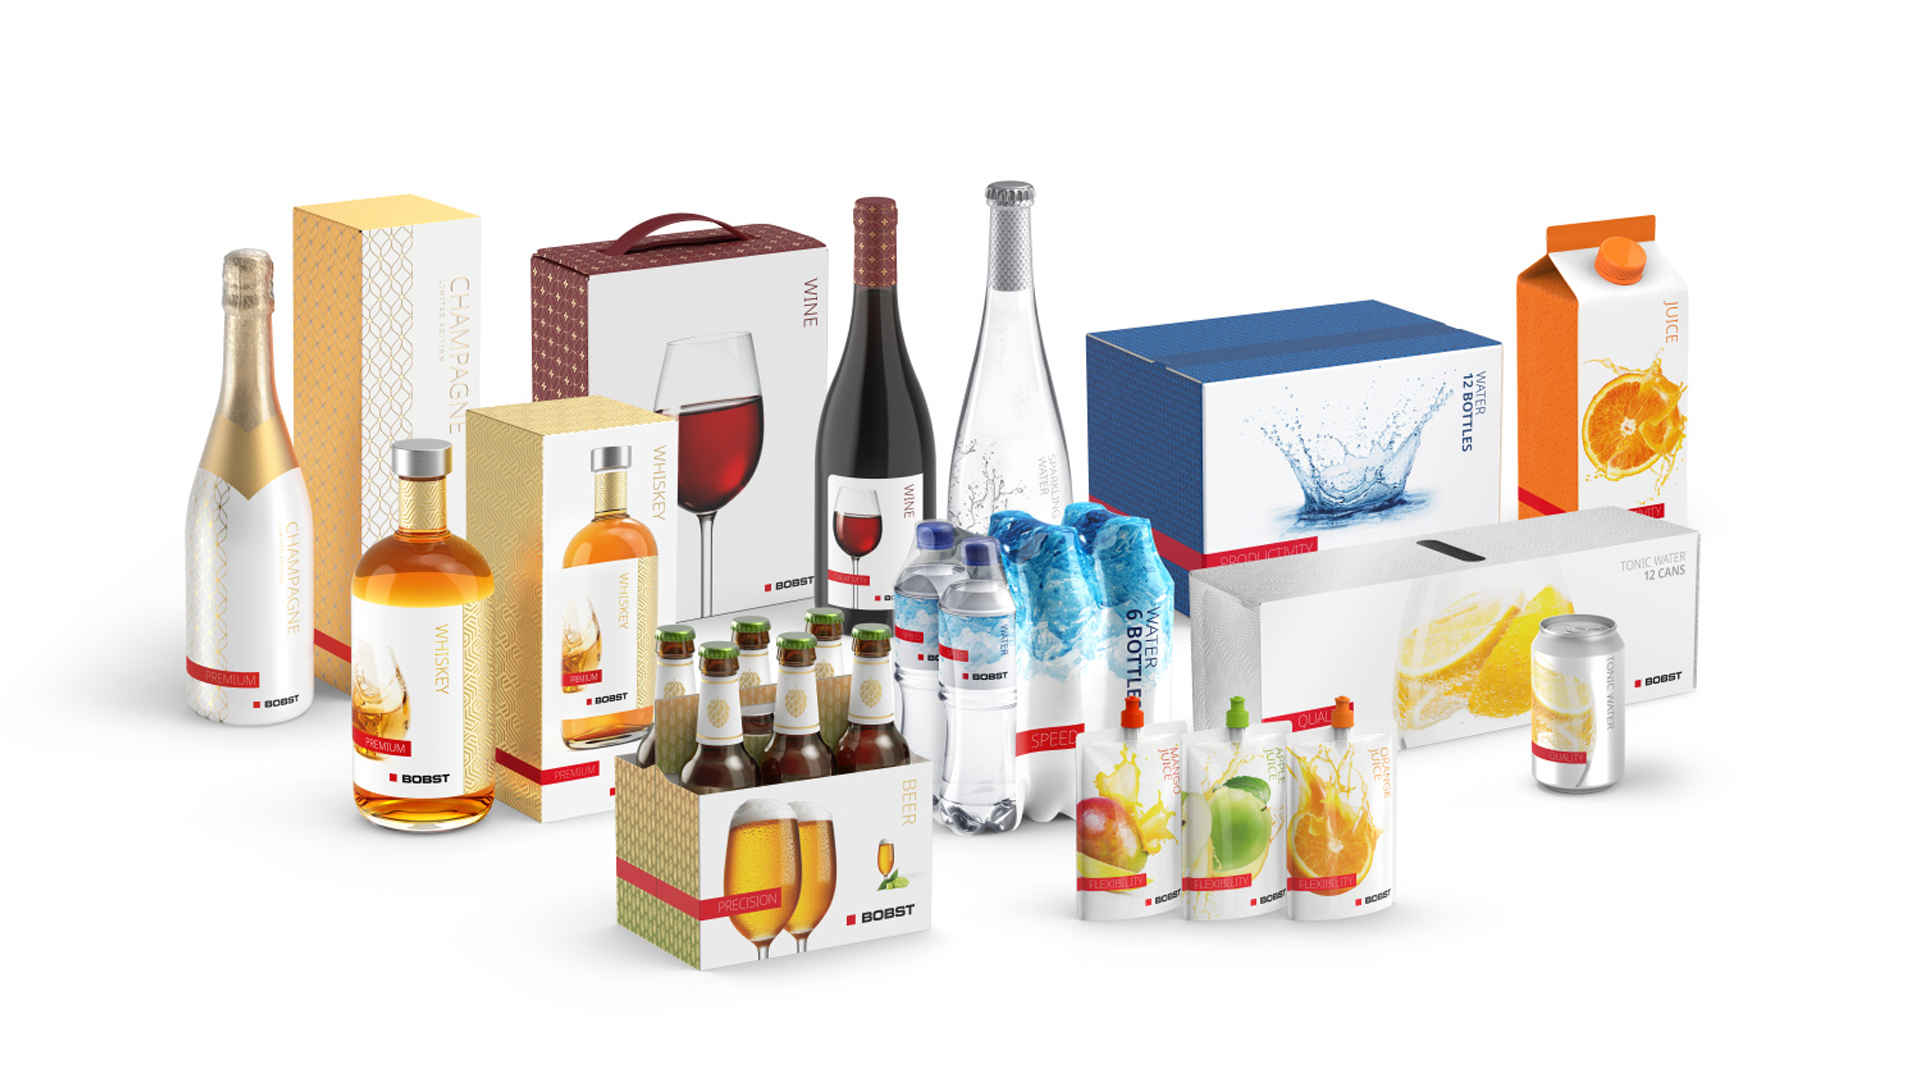 The digitalization of color in packaging: a bright future